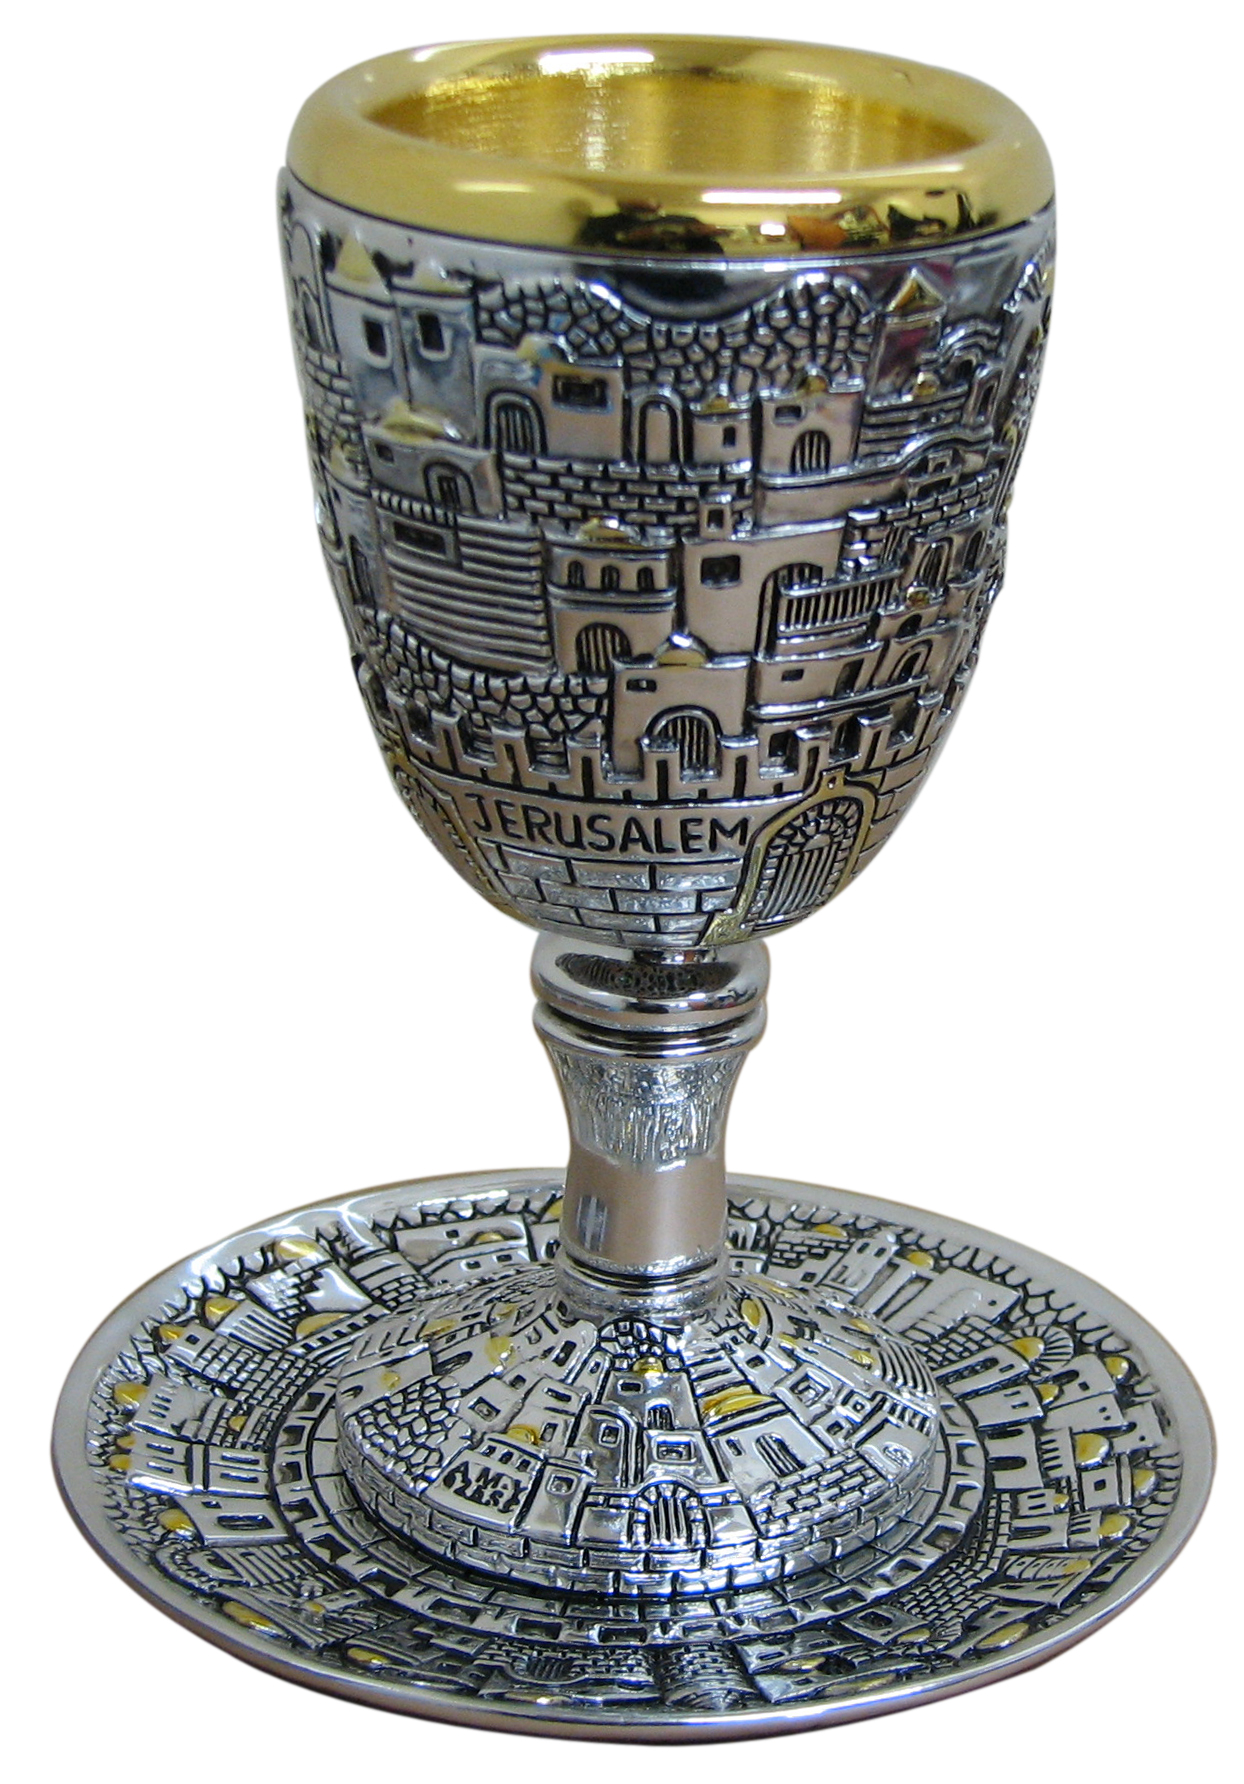 Chalice clipart kiddush cup. Electroforming silver plated jerusalem